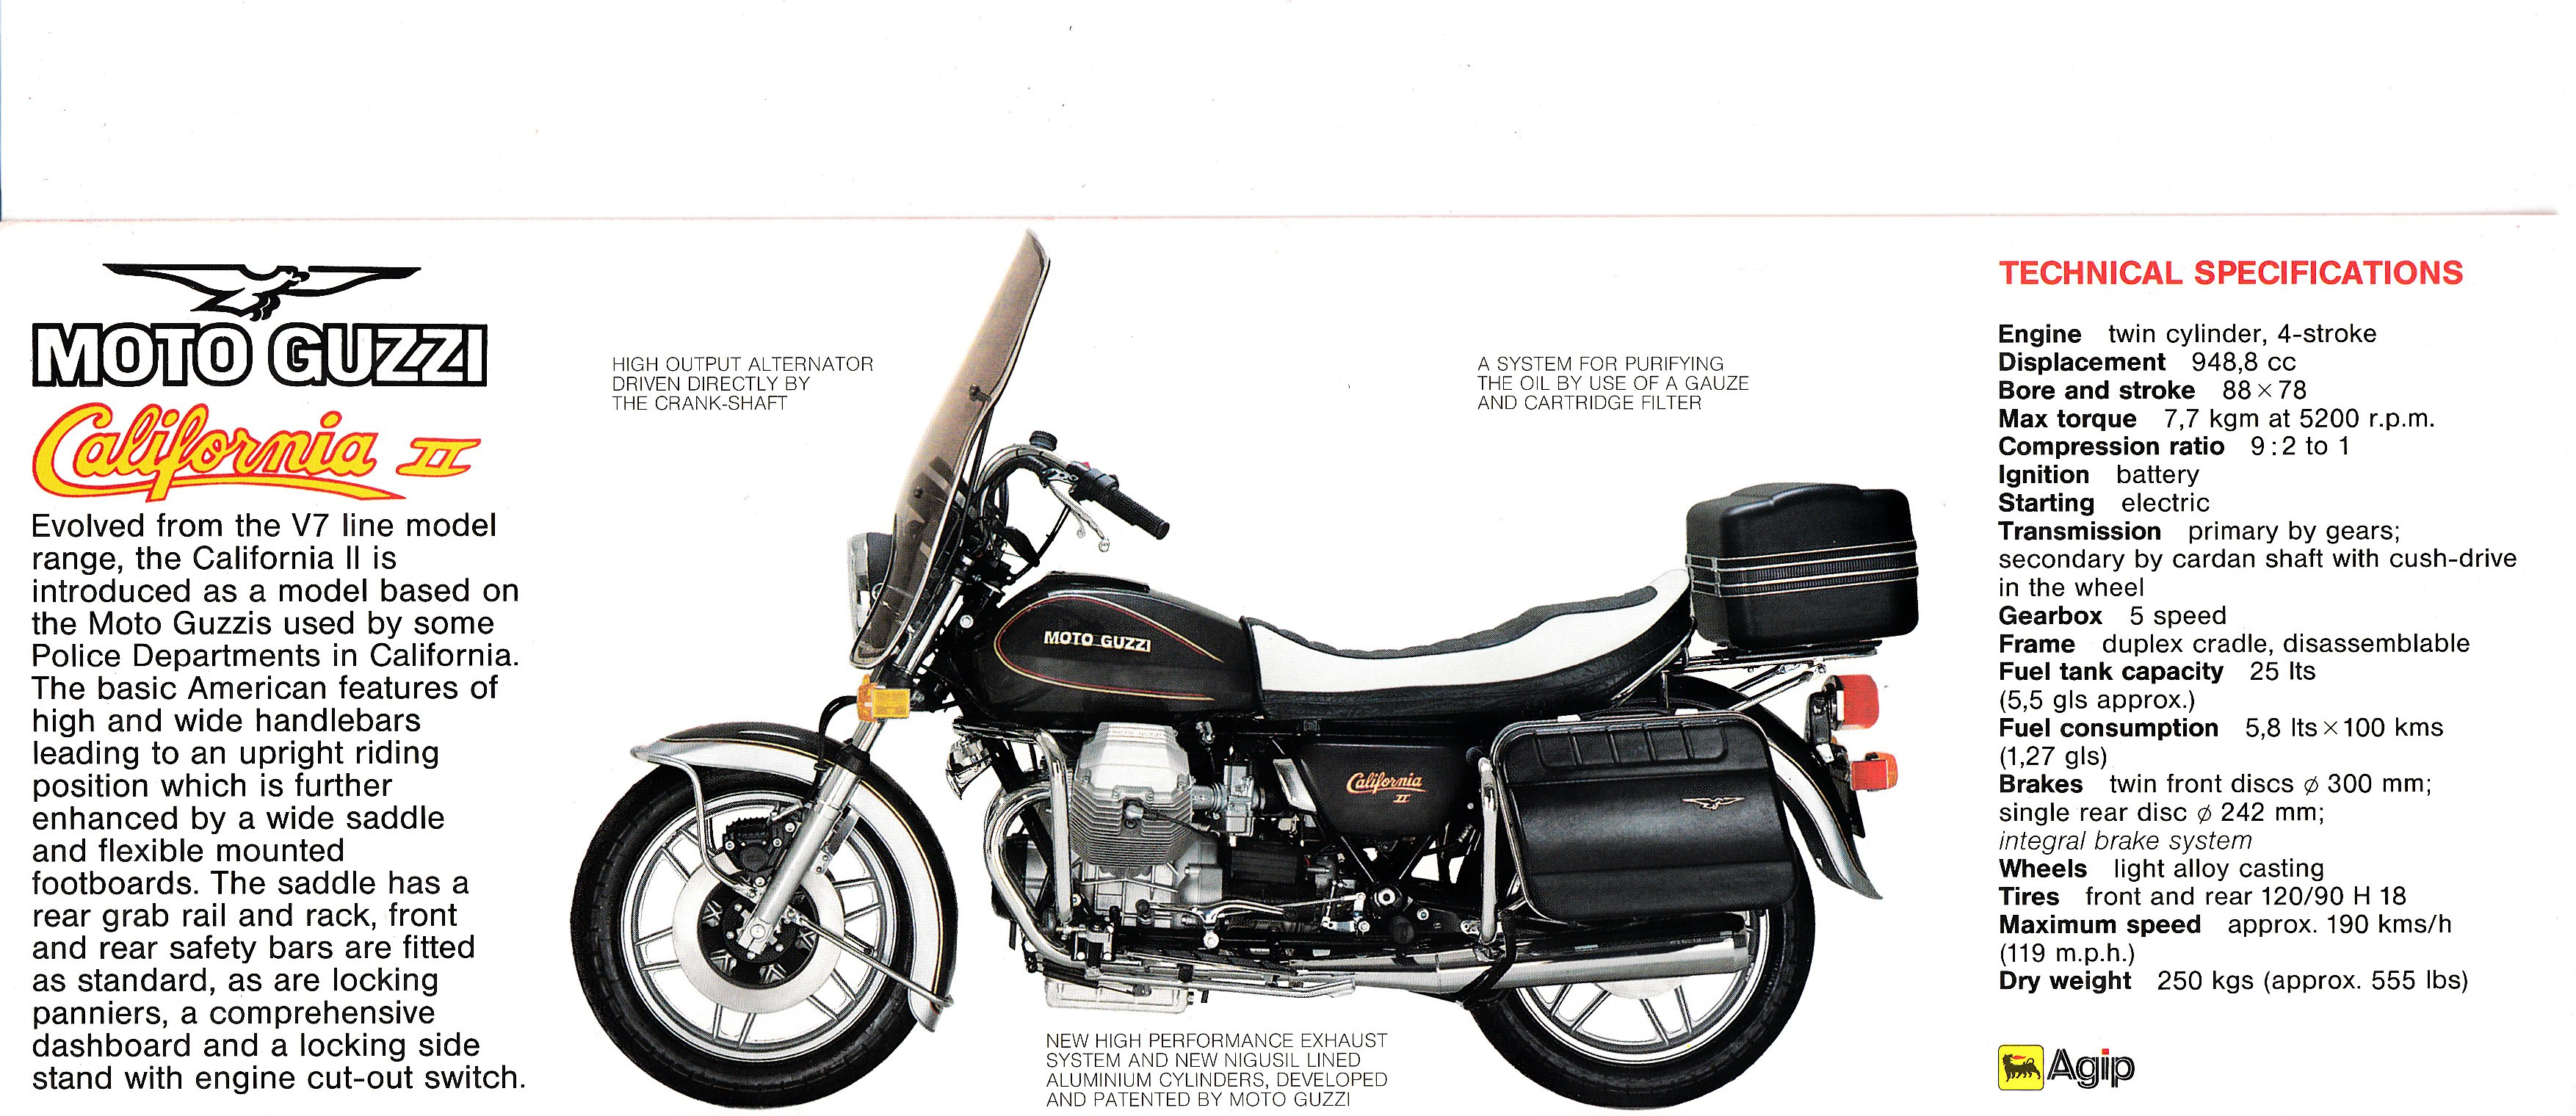 Brochure - Moto Guzzi California II (folded style brochure)